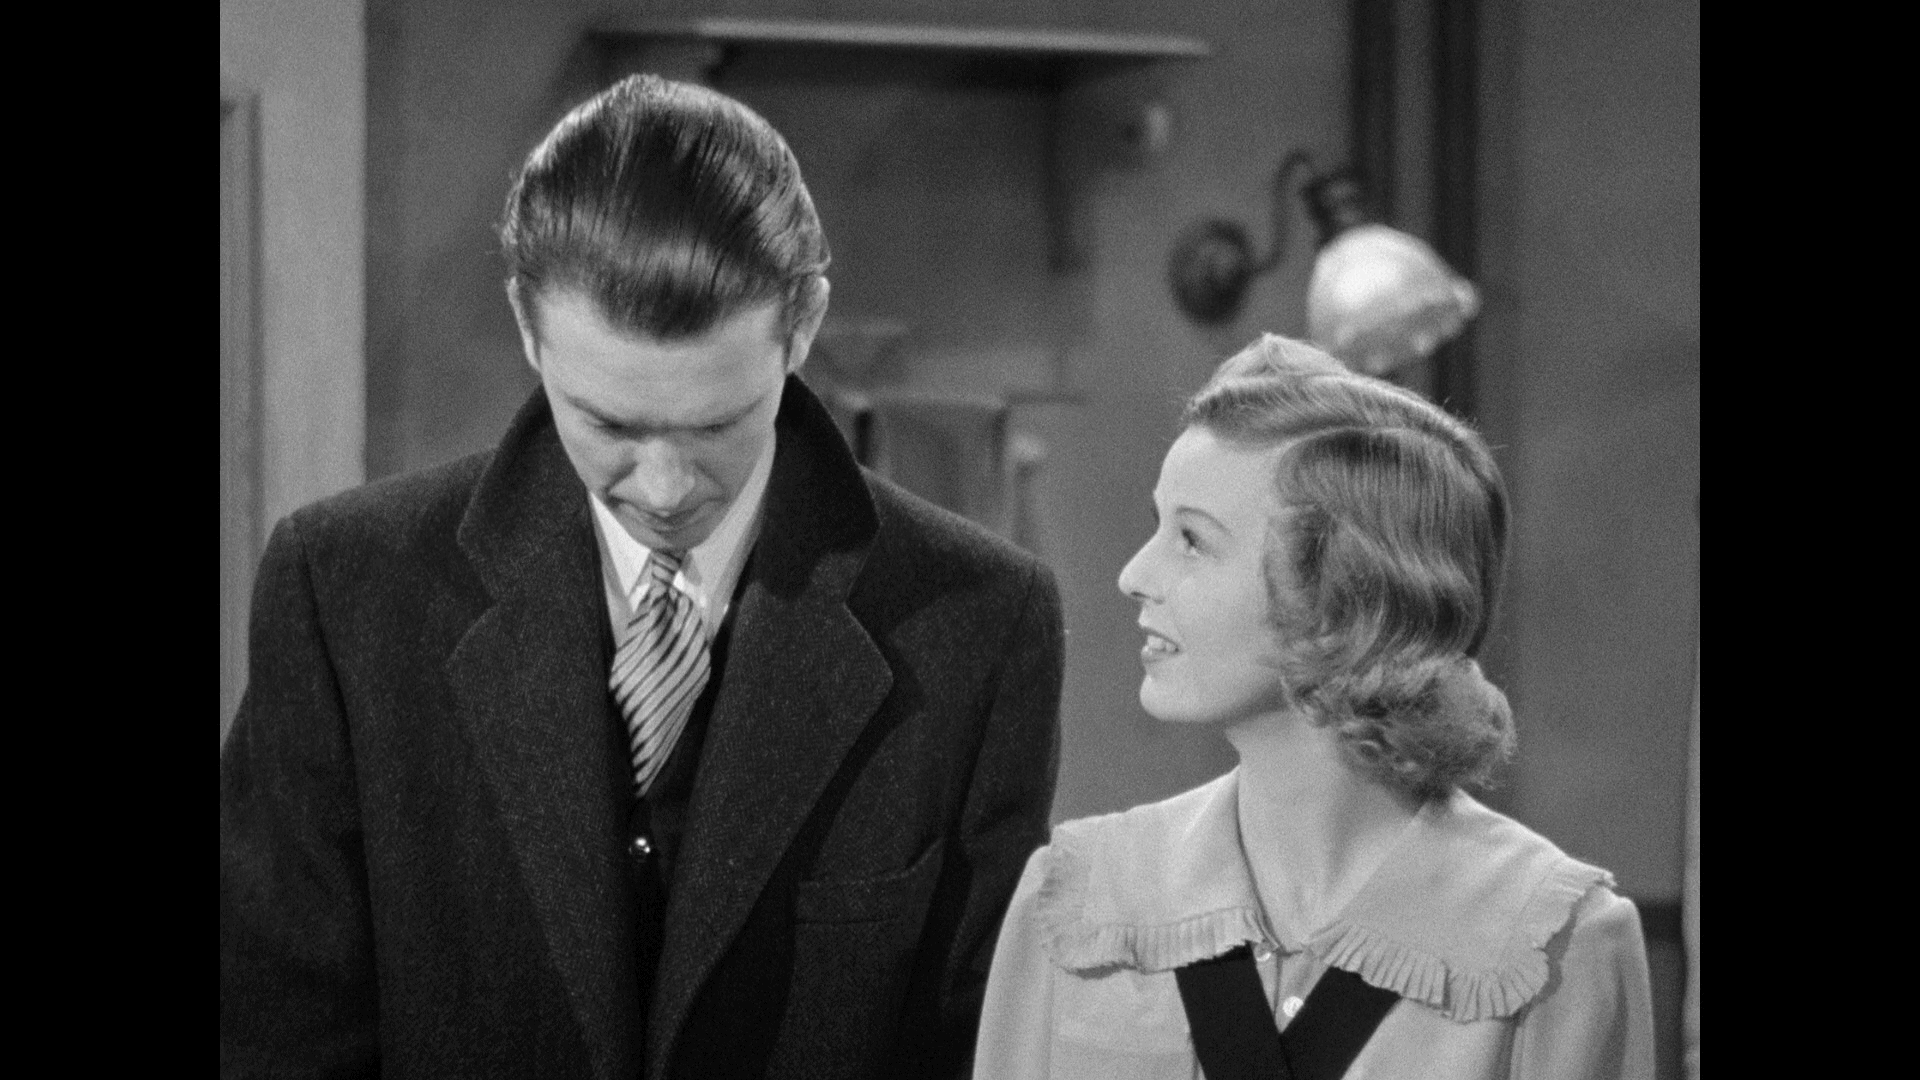 The Shop Around The Corner (1940) [Warner Archive Blu-ray review] 4